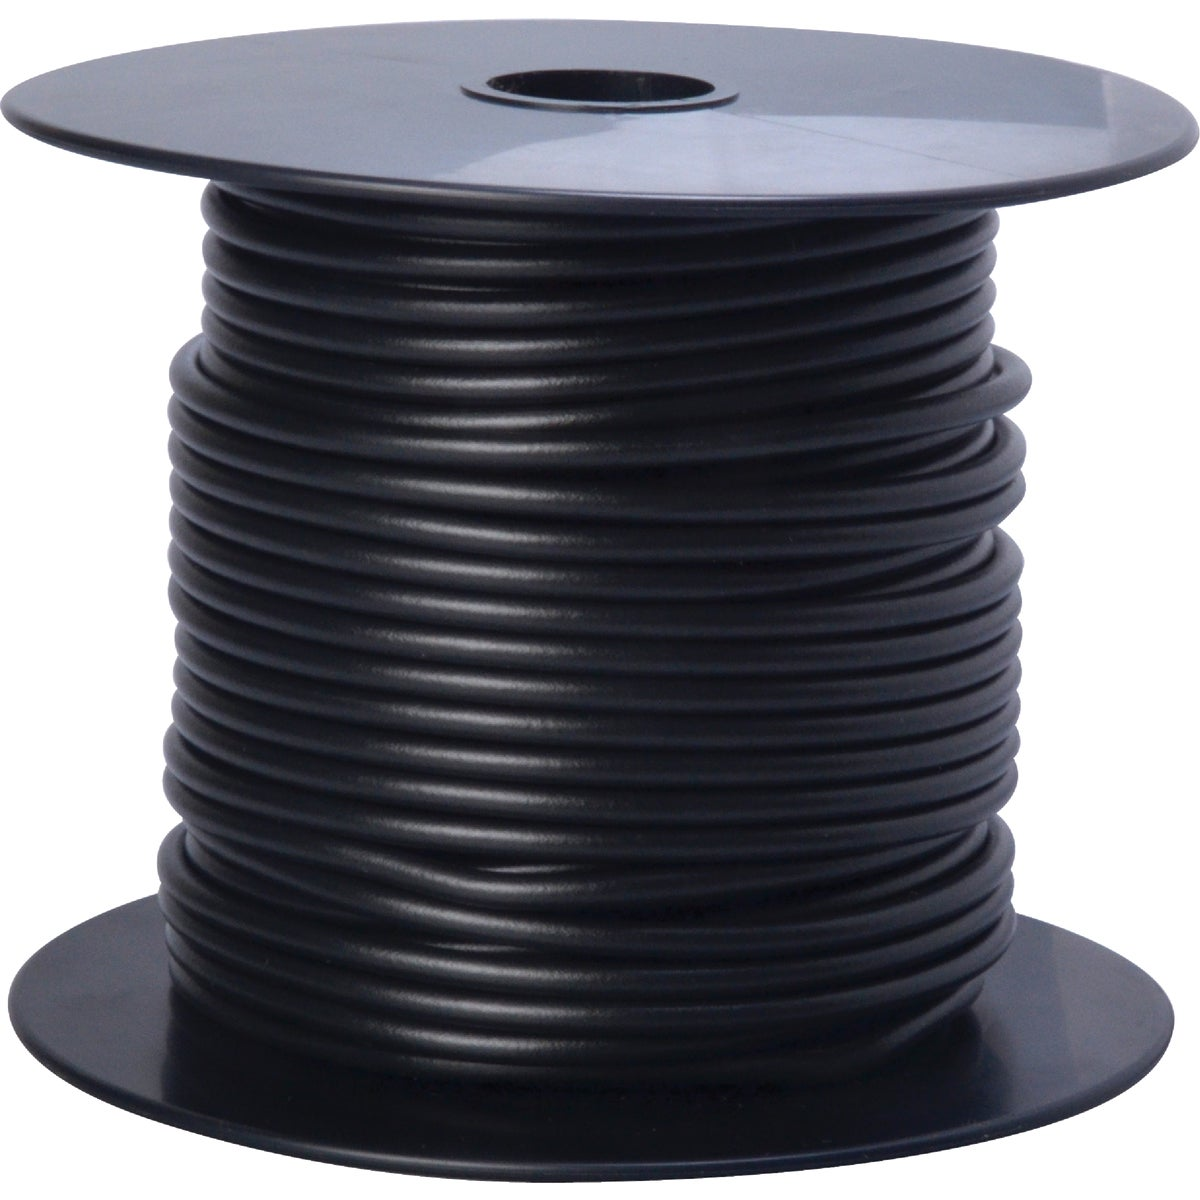 100' 14GA BLK AUTO WIRE - 14-100-11 by Woods Wire Coleman